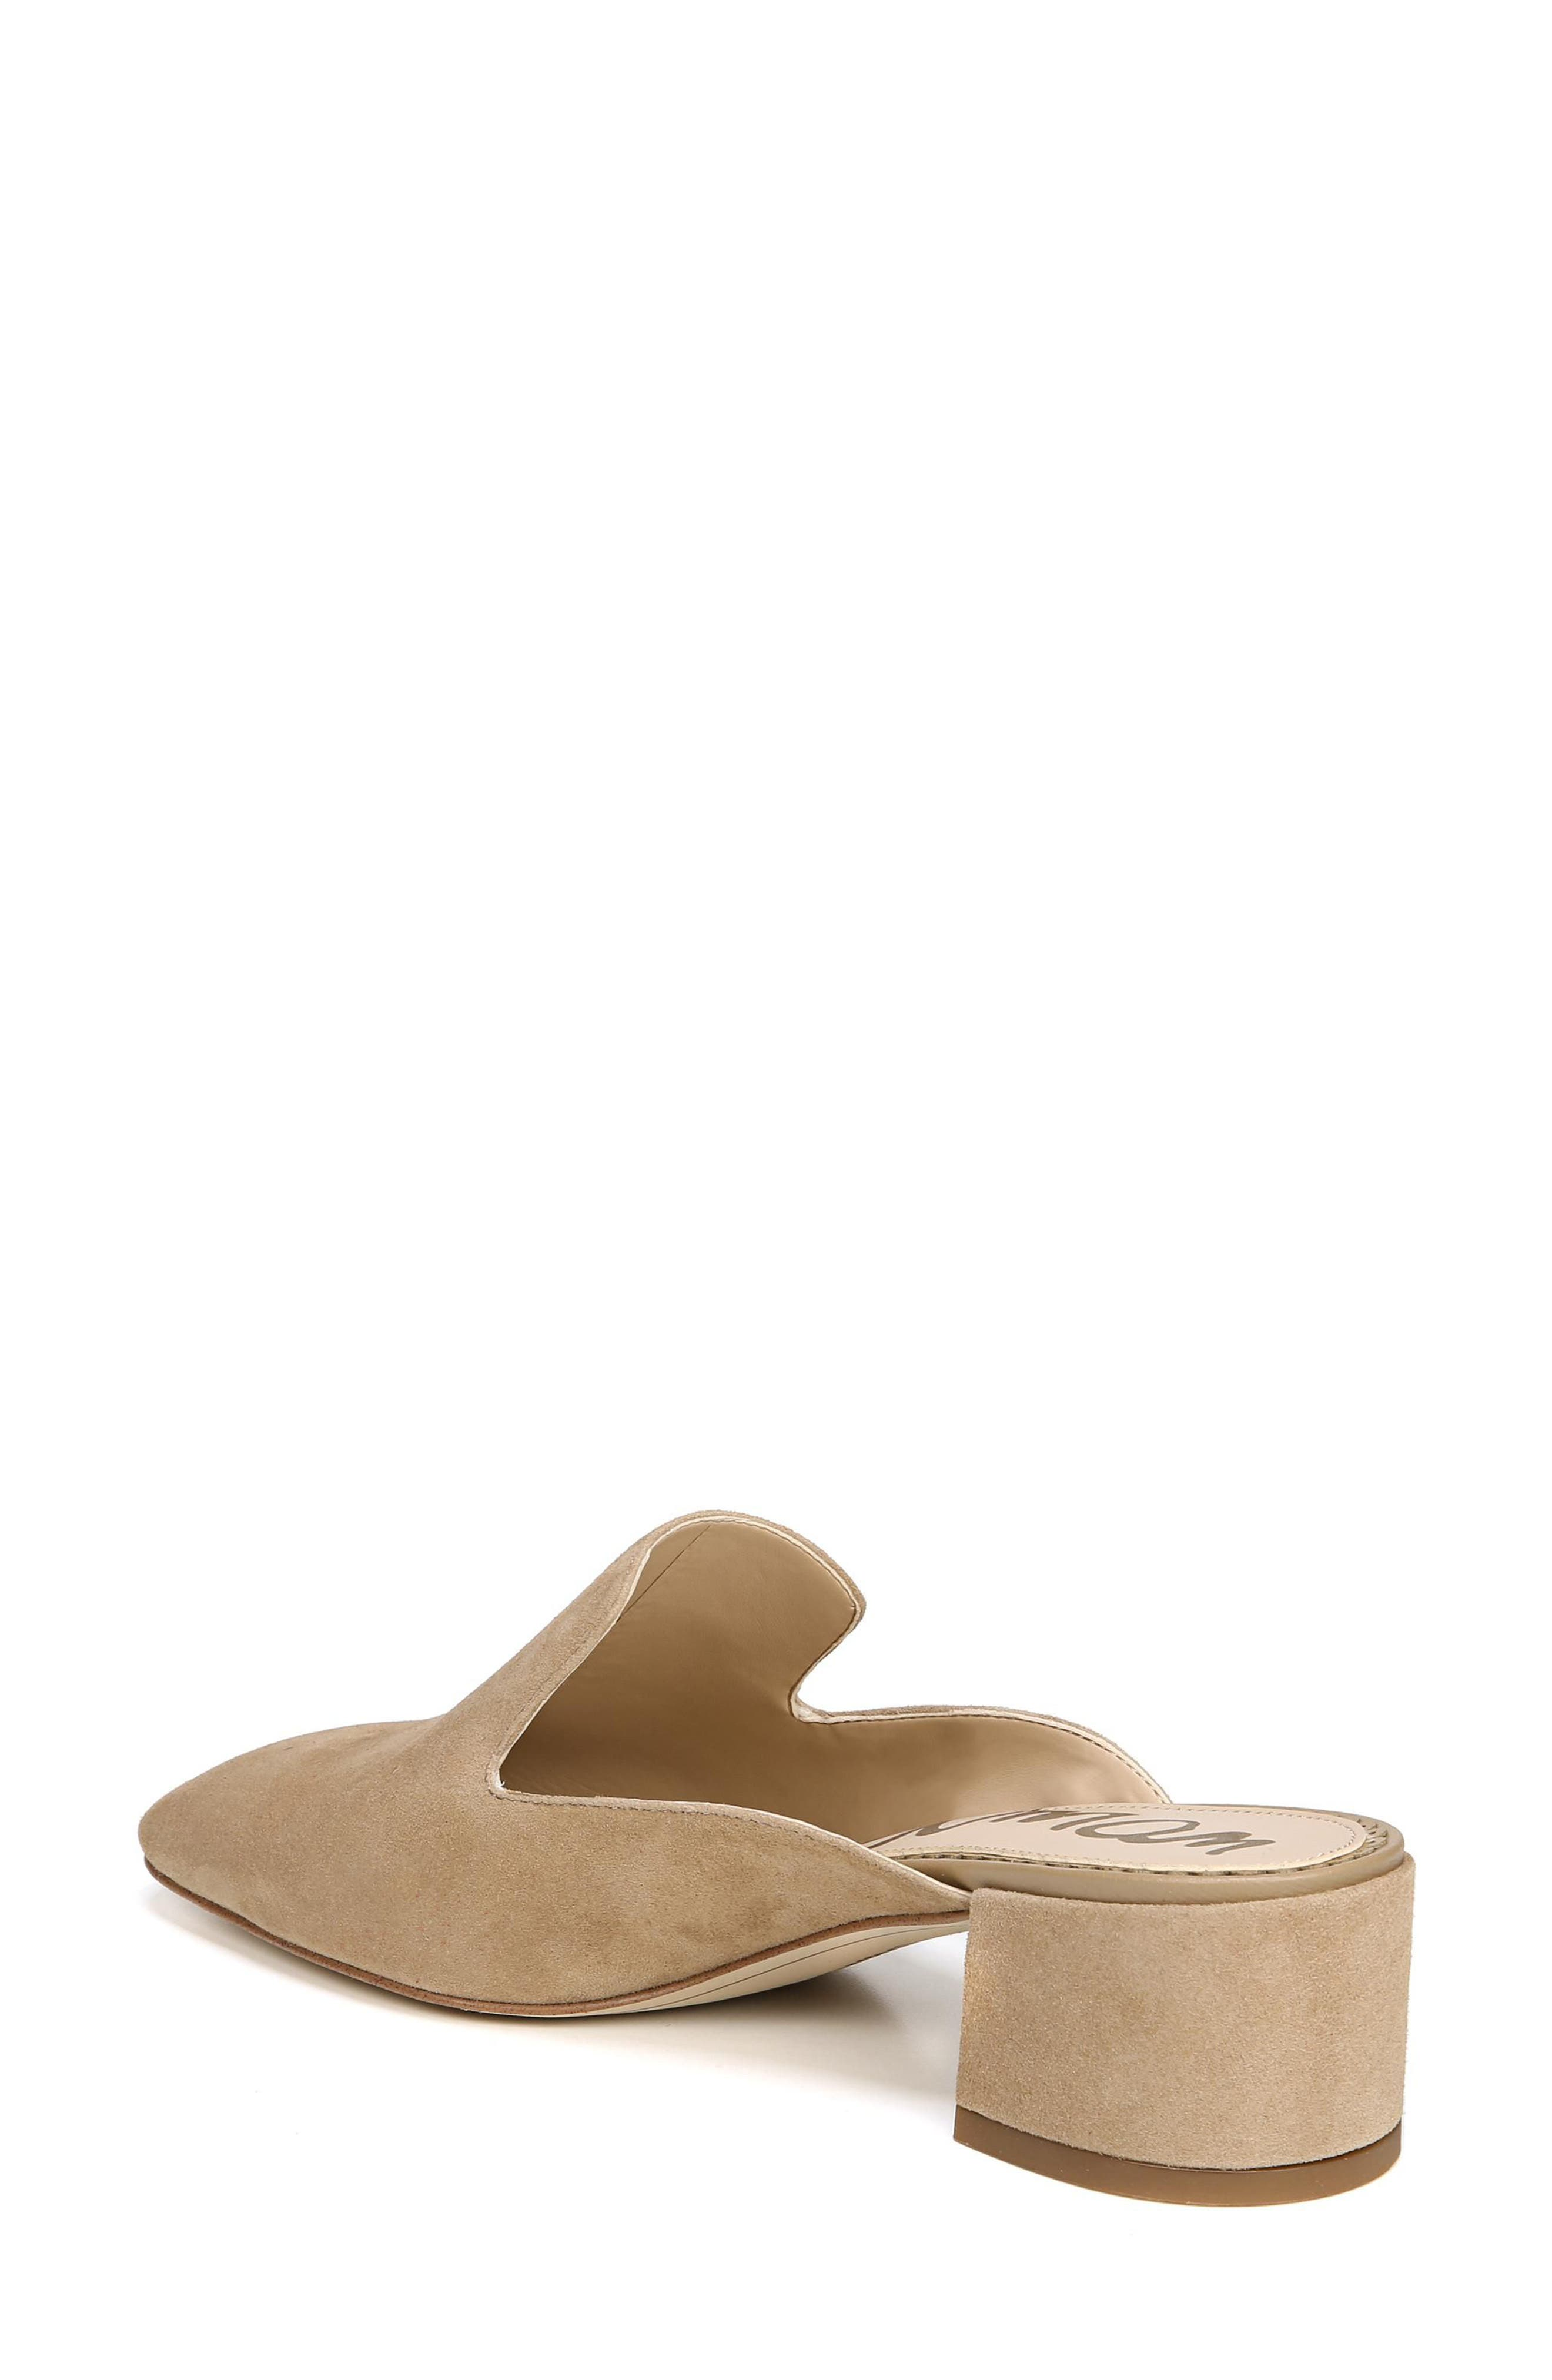 Adair Loafer Mule,                             Alternate thumbnail 2, color,                             OATMEAL LEATHER